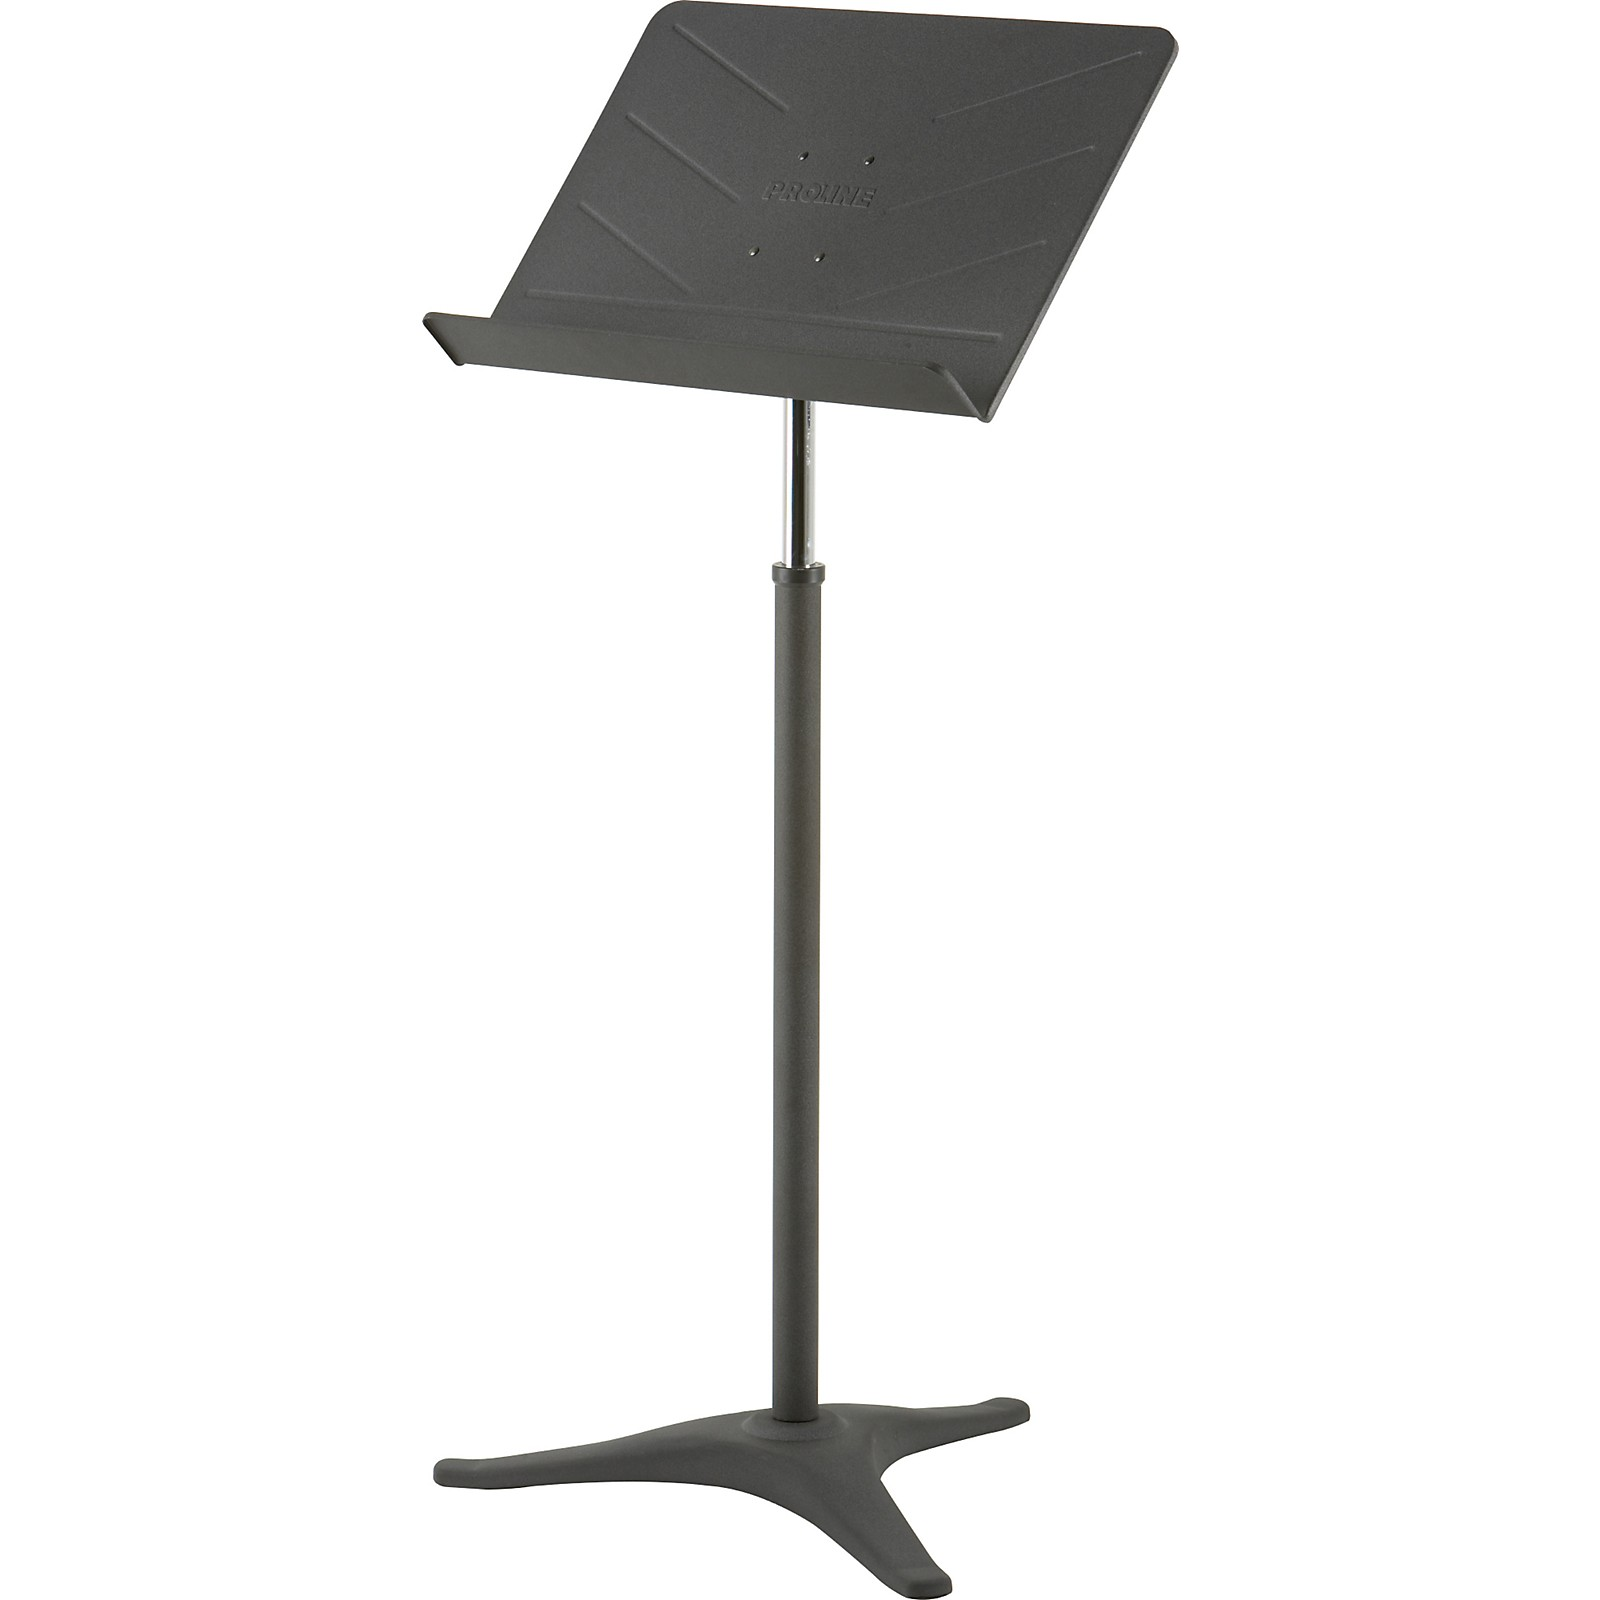 Proline PL49 Deluxe Music Stand